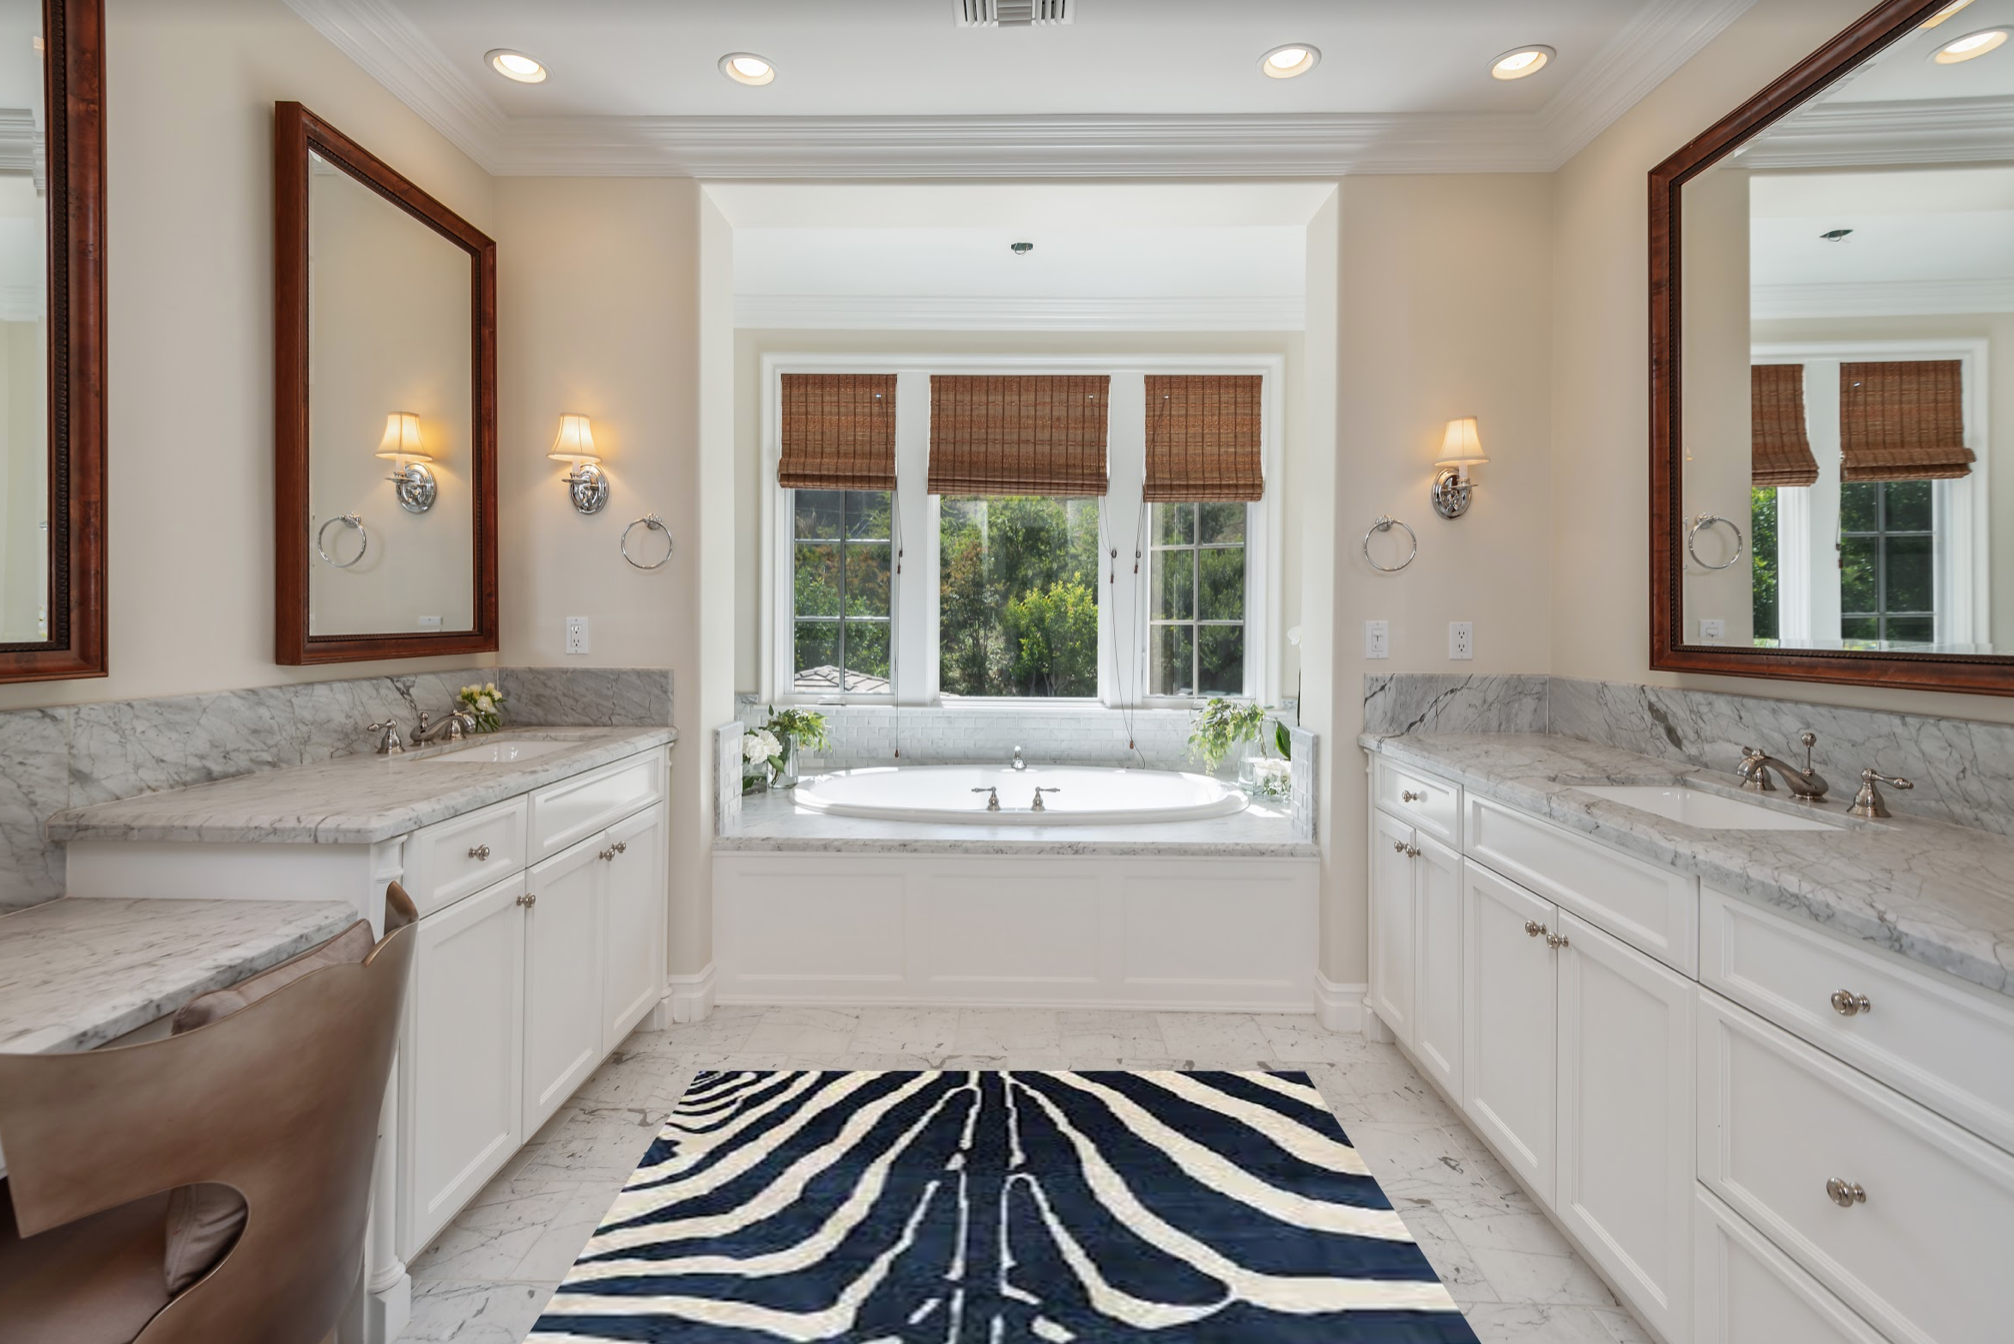 white windows in bathroom with cheetah rug